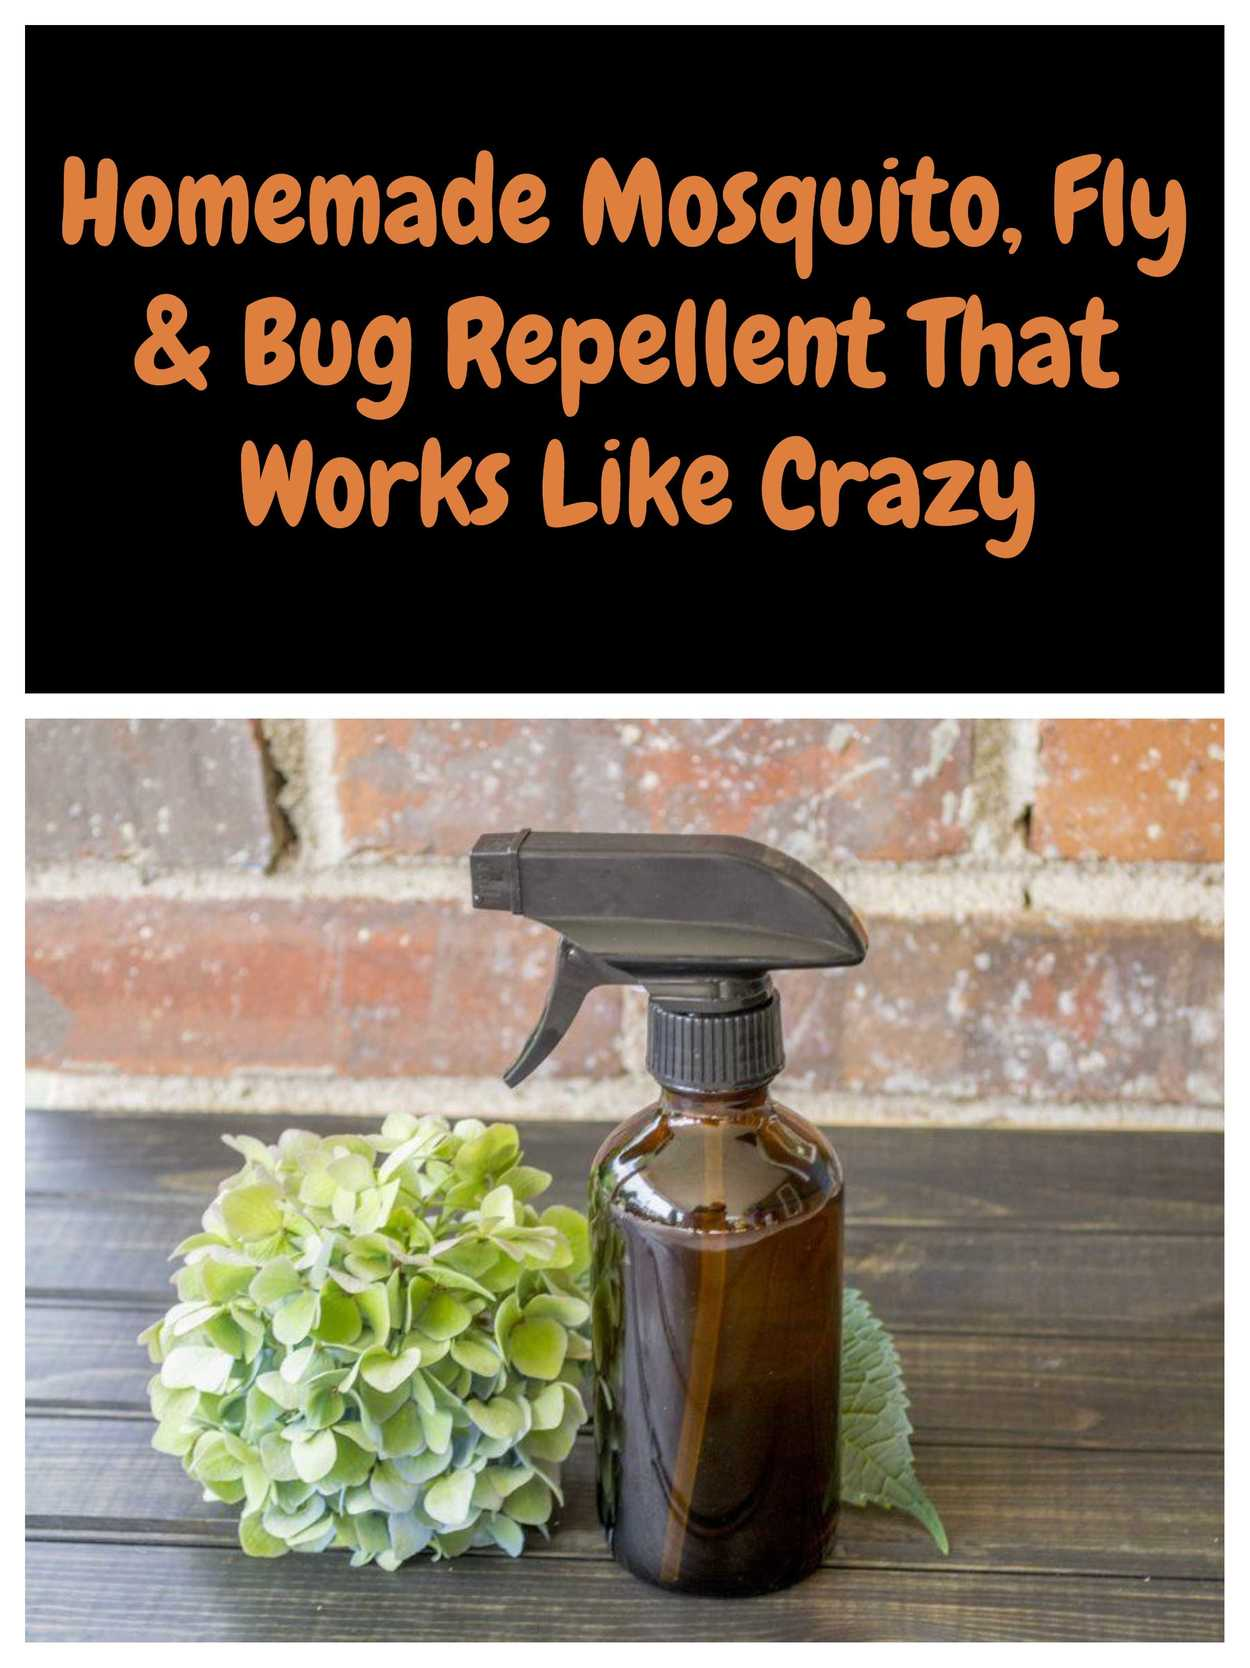 This natural herbal spray will repel mosquitoes, flies and other annoying bugs and stop you